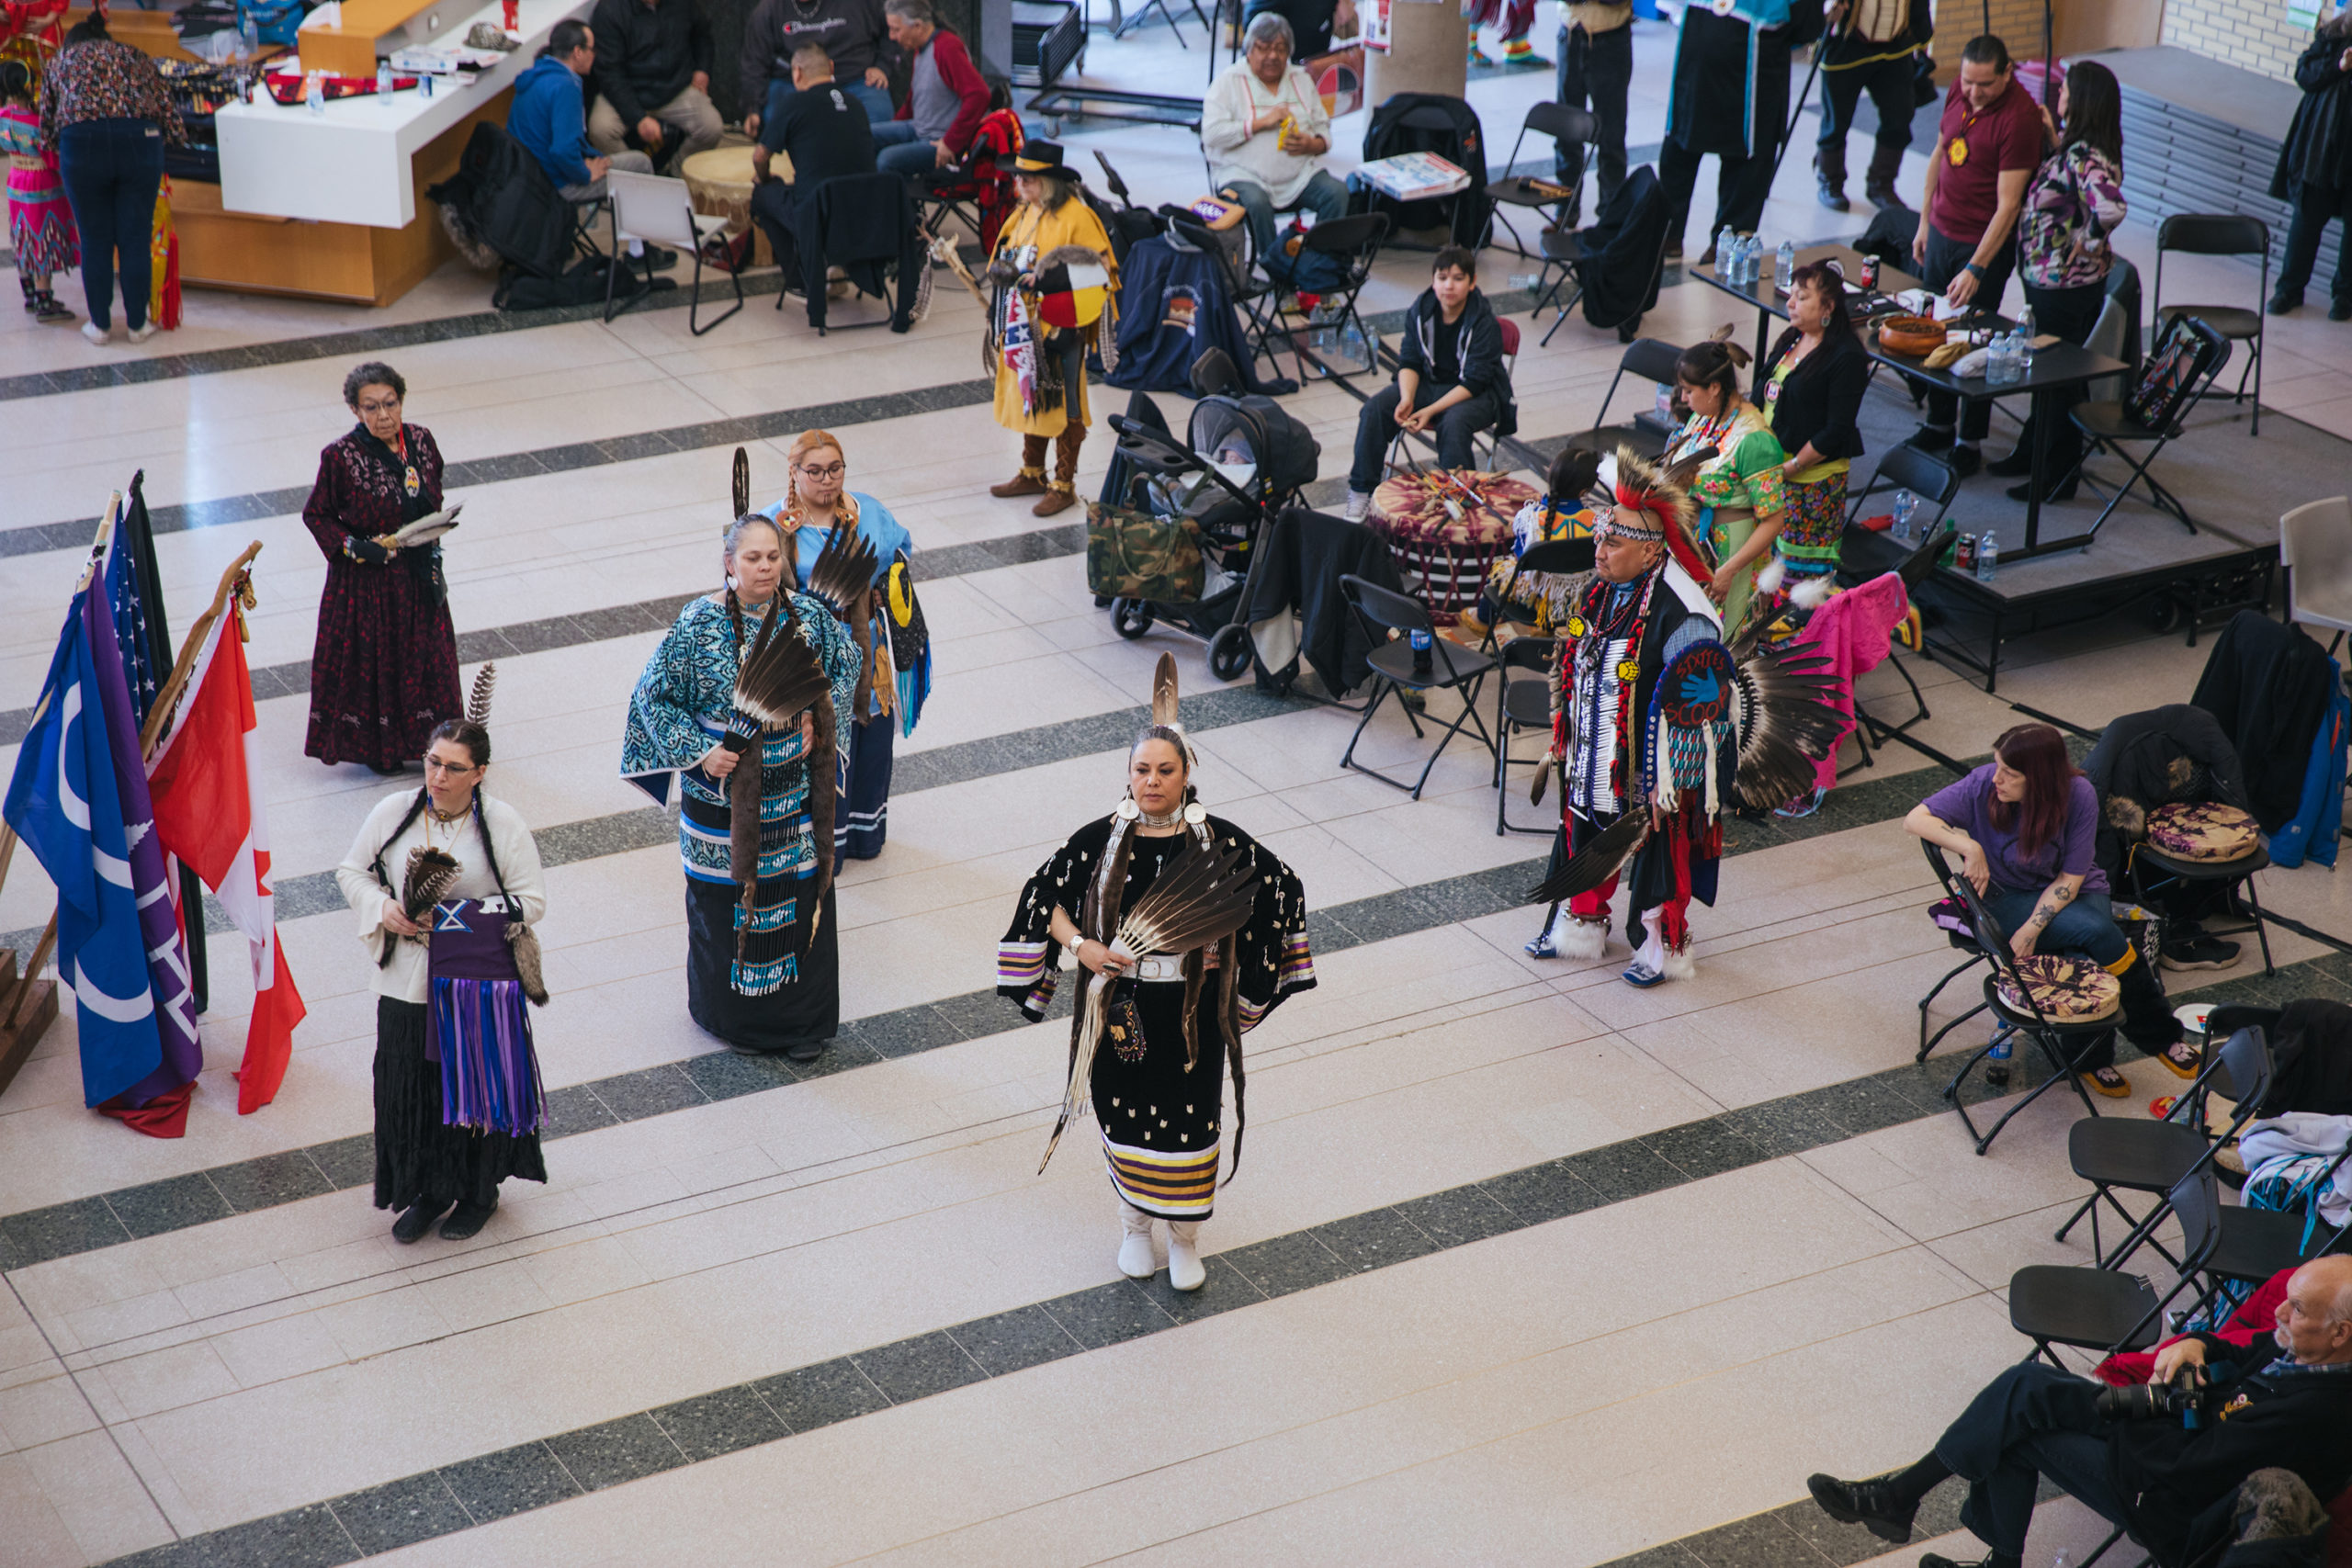 2020 All Nations Pow Wow at York University's Keele Campus